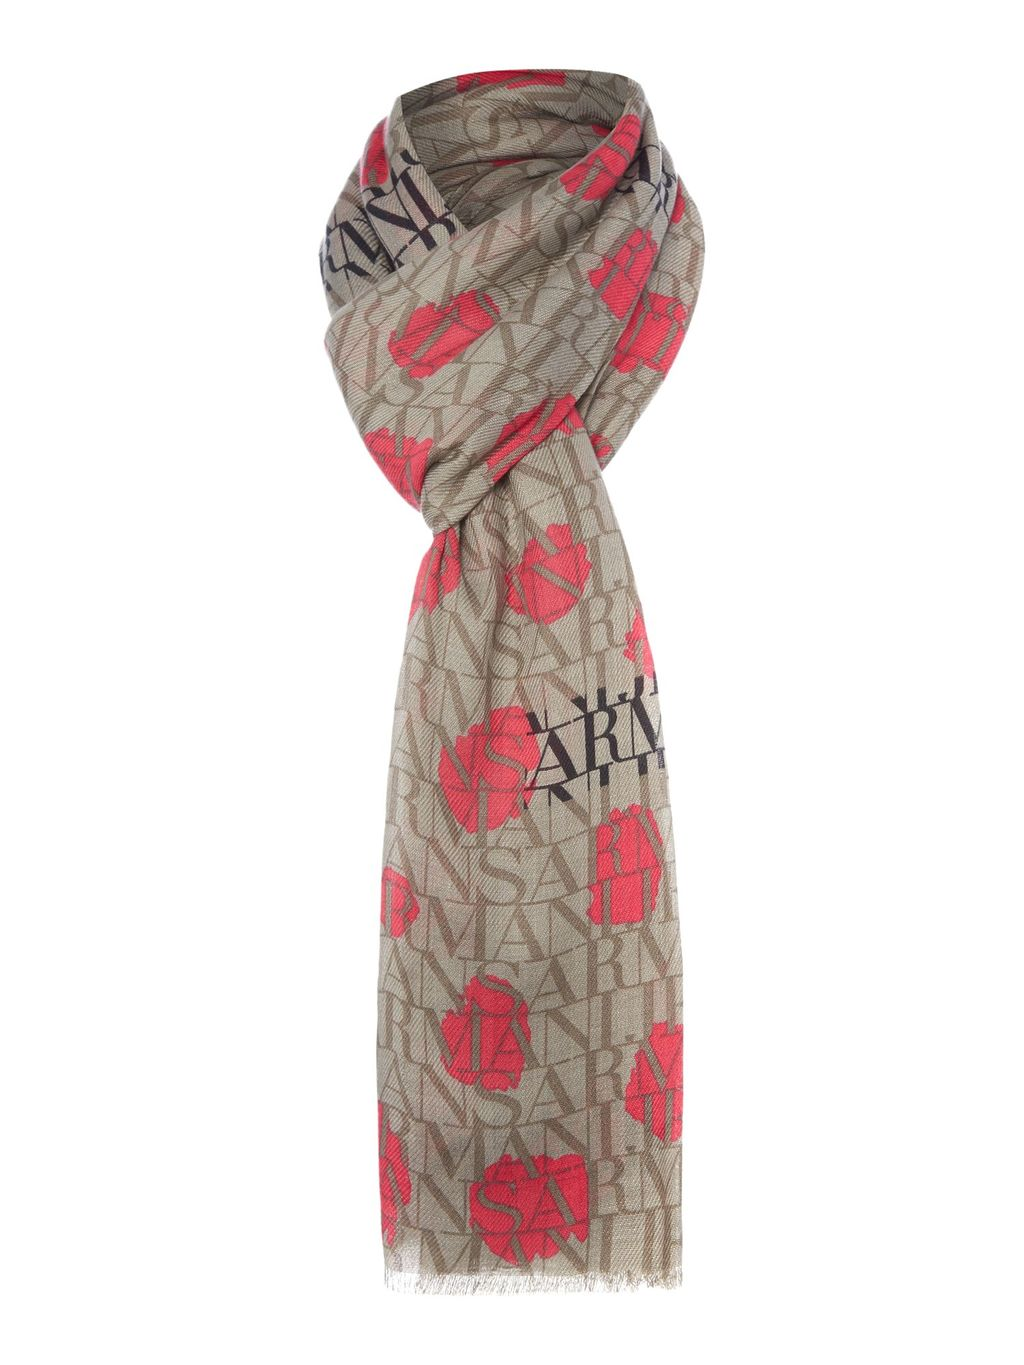 Spot Logo Scarf, Grey - secondary colour: true red; predominant colour: mid grey; occasions: casual, creative work; type of pattern: heavy; style: regular; size: standard; material: fabric; pattern: patterned/print; season: s/s 2016; wardrobe: highlight